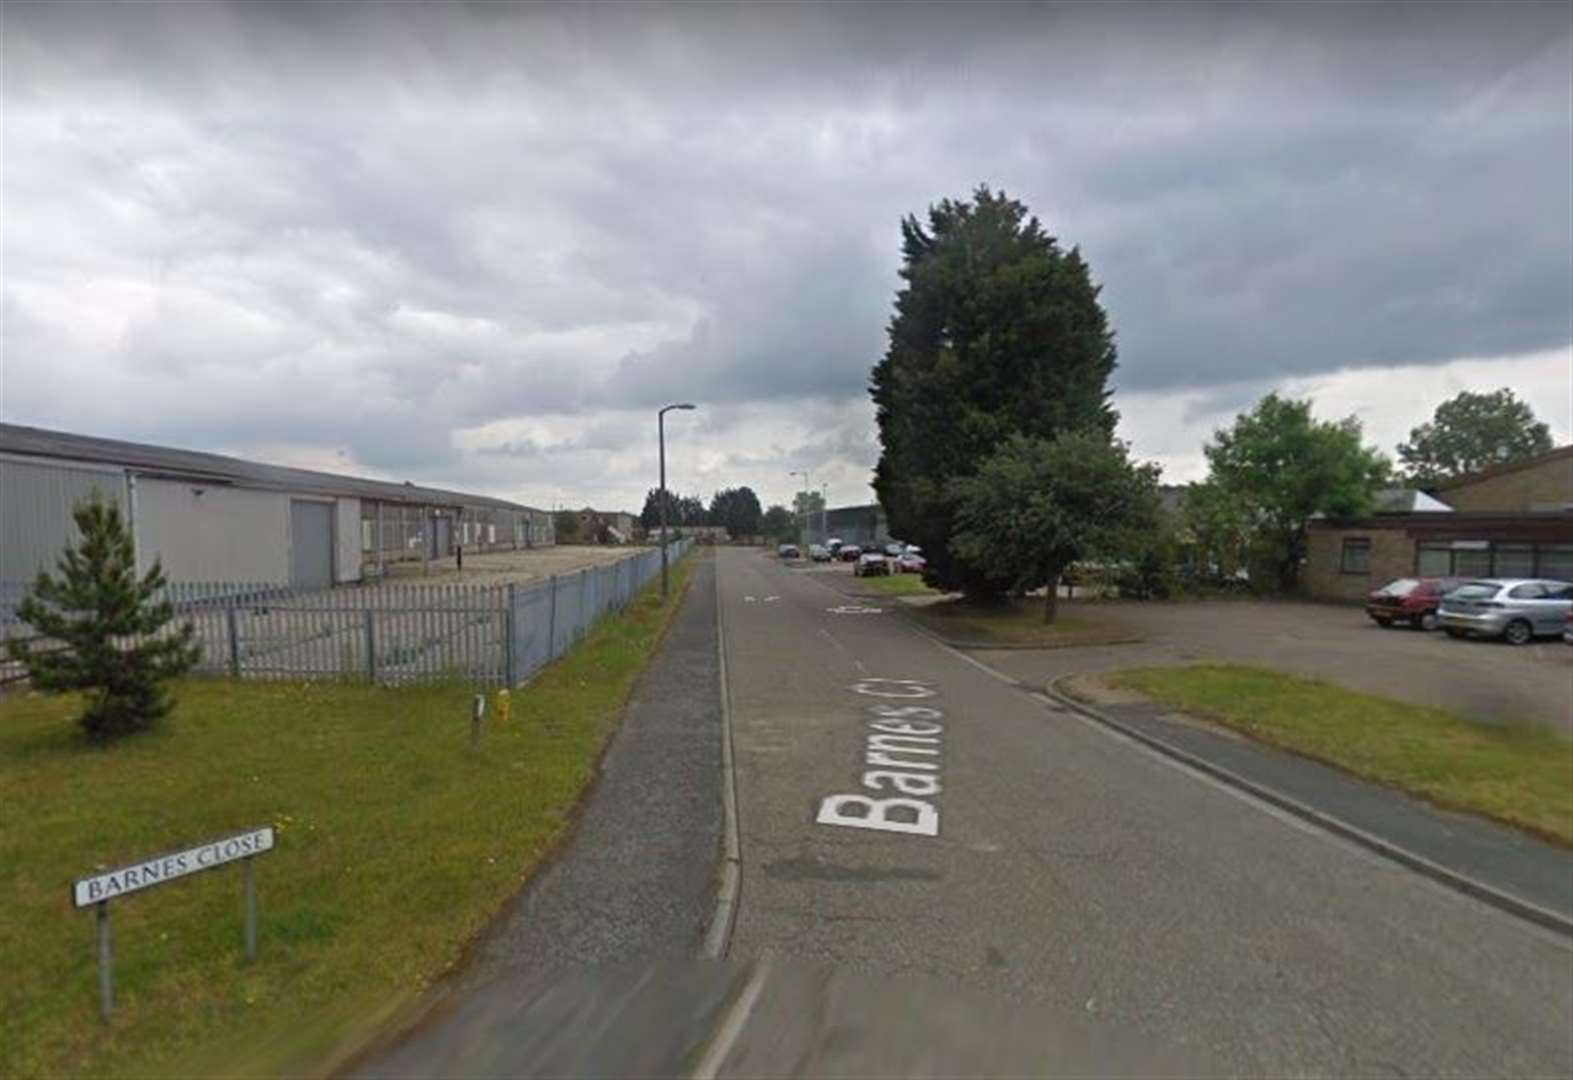 Controversial pet crematorium plans cancelled